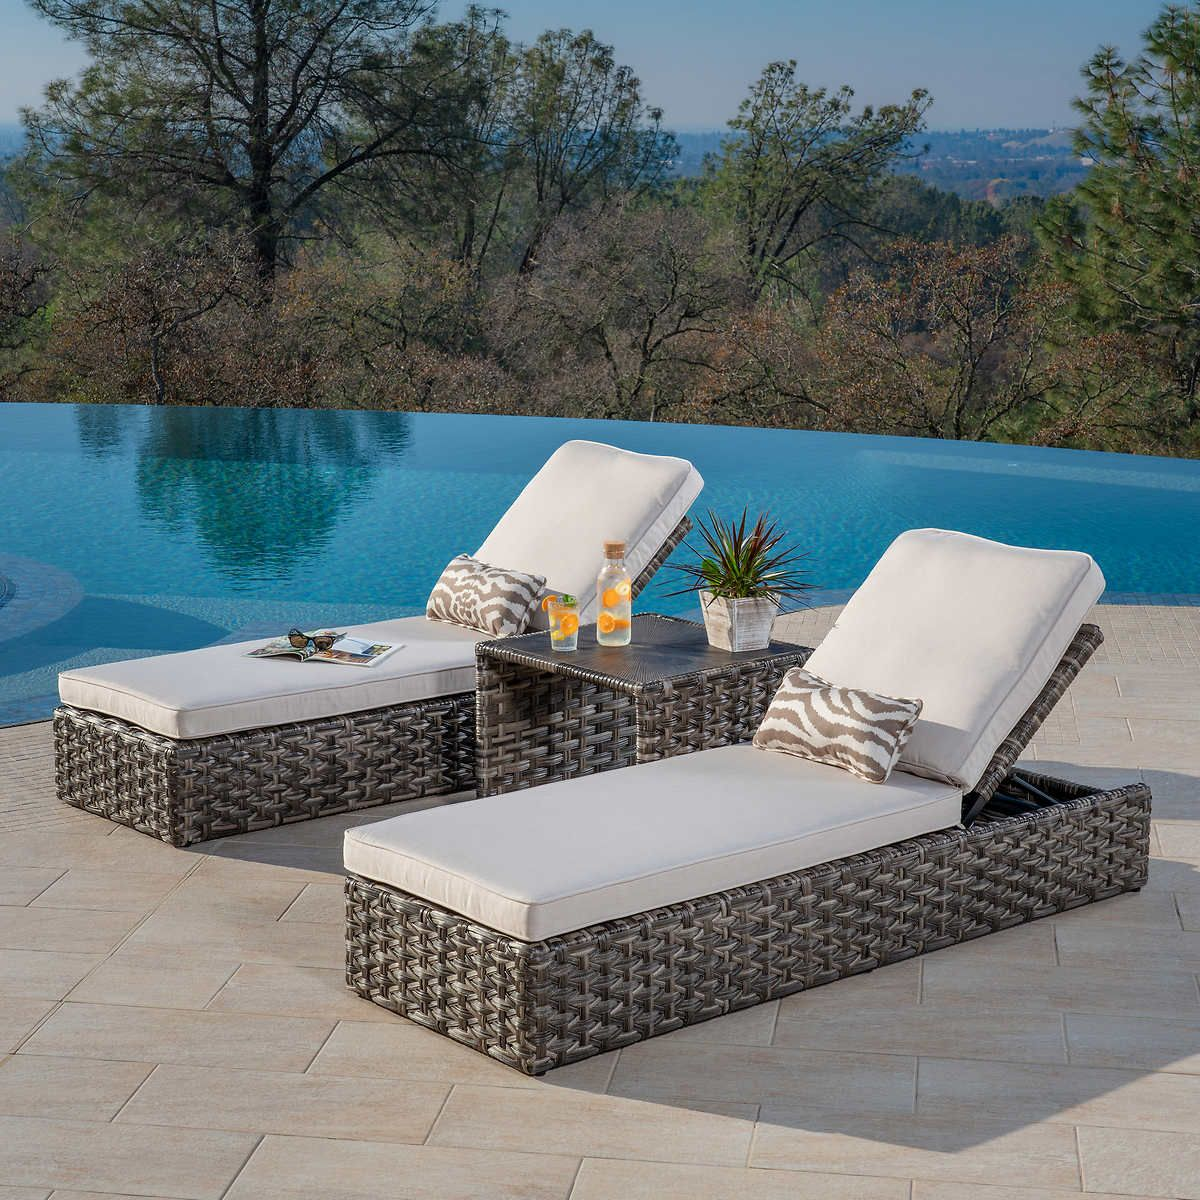 Terra Mar 3-piece Chaise Set in 2020 (With images) | Pool ...